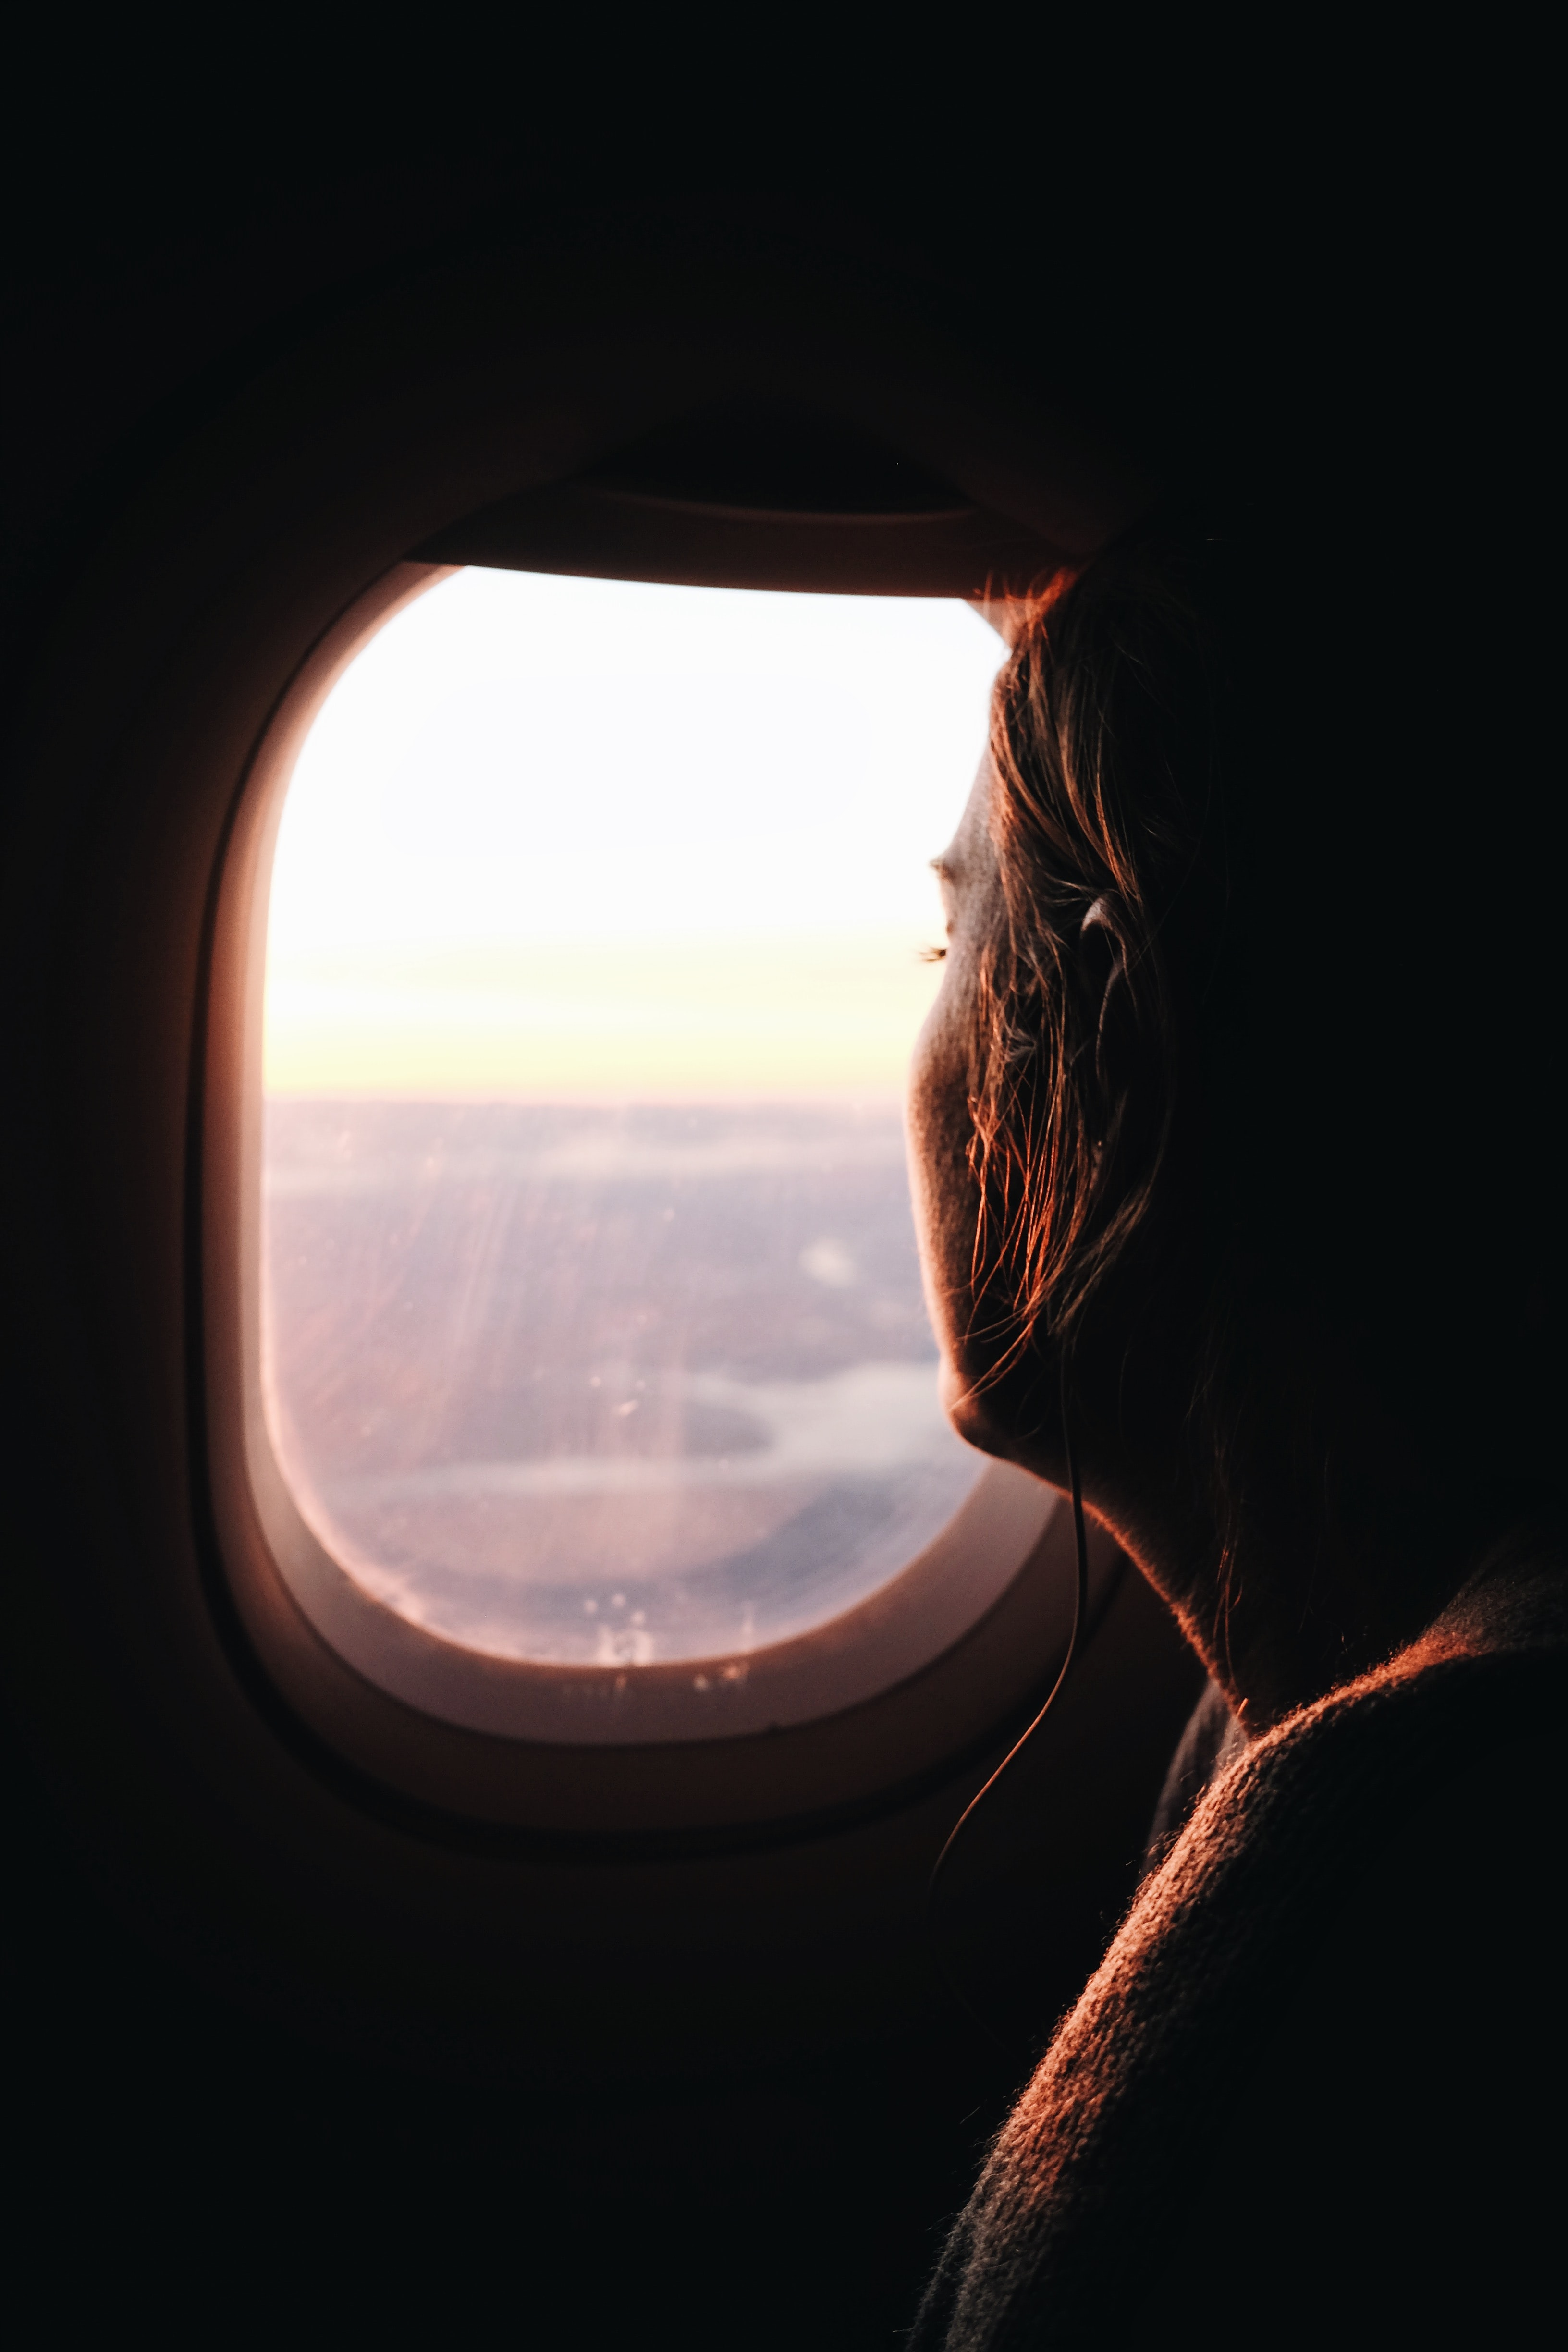 Woman with short hair peering from out of airplane window to sunset over São Paulo